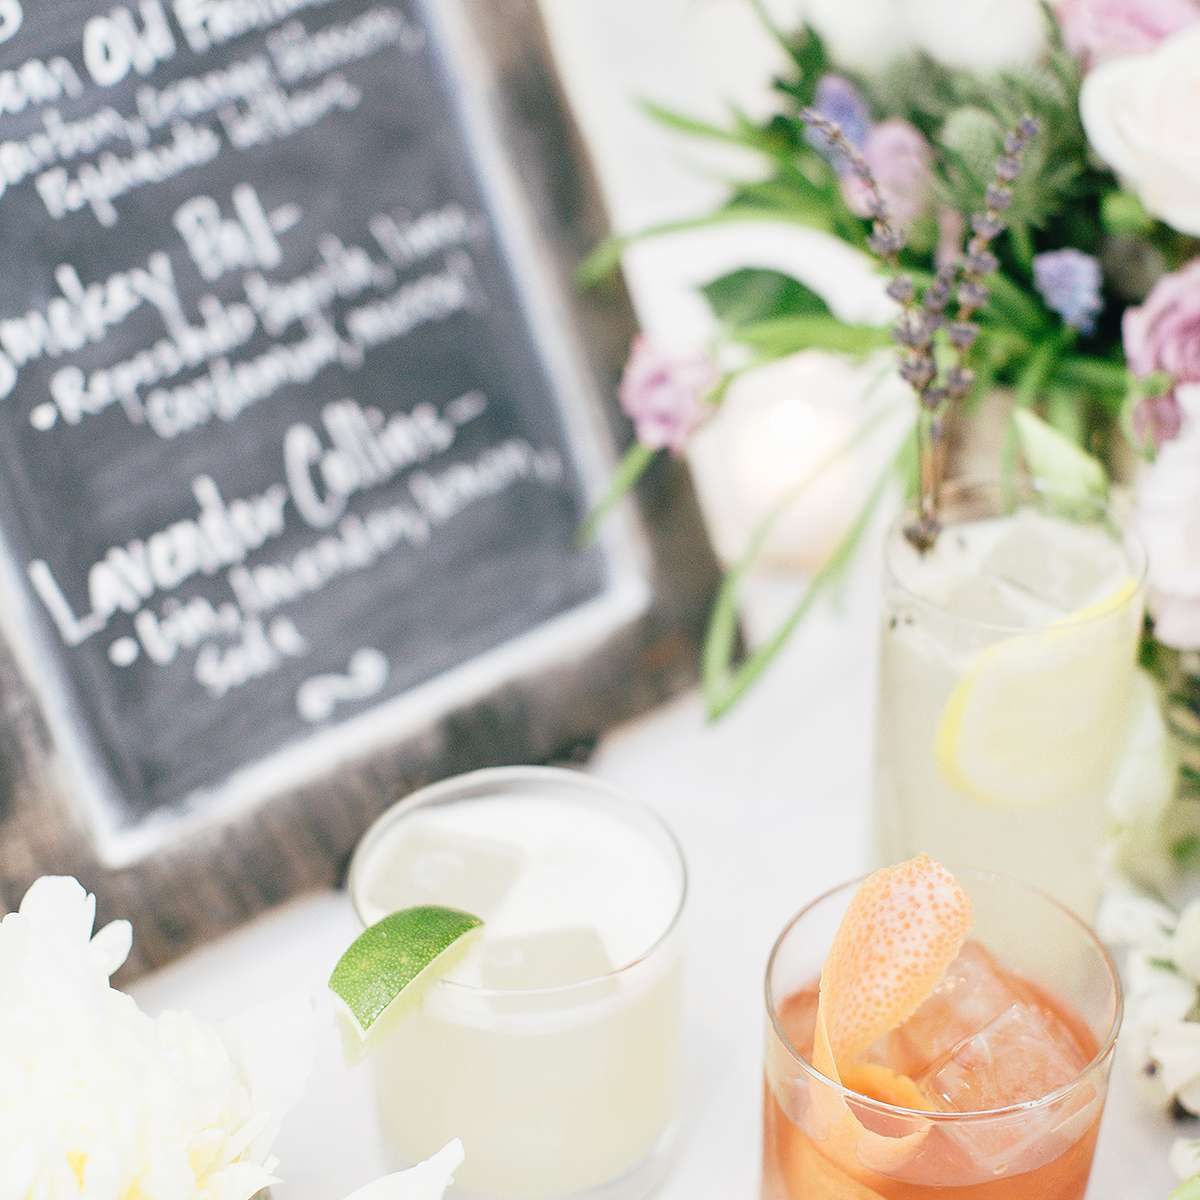 cocktails in front of a chalkboard menu